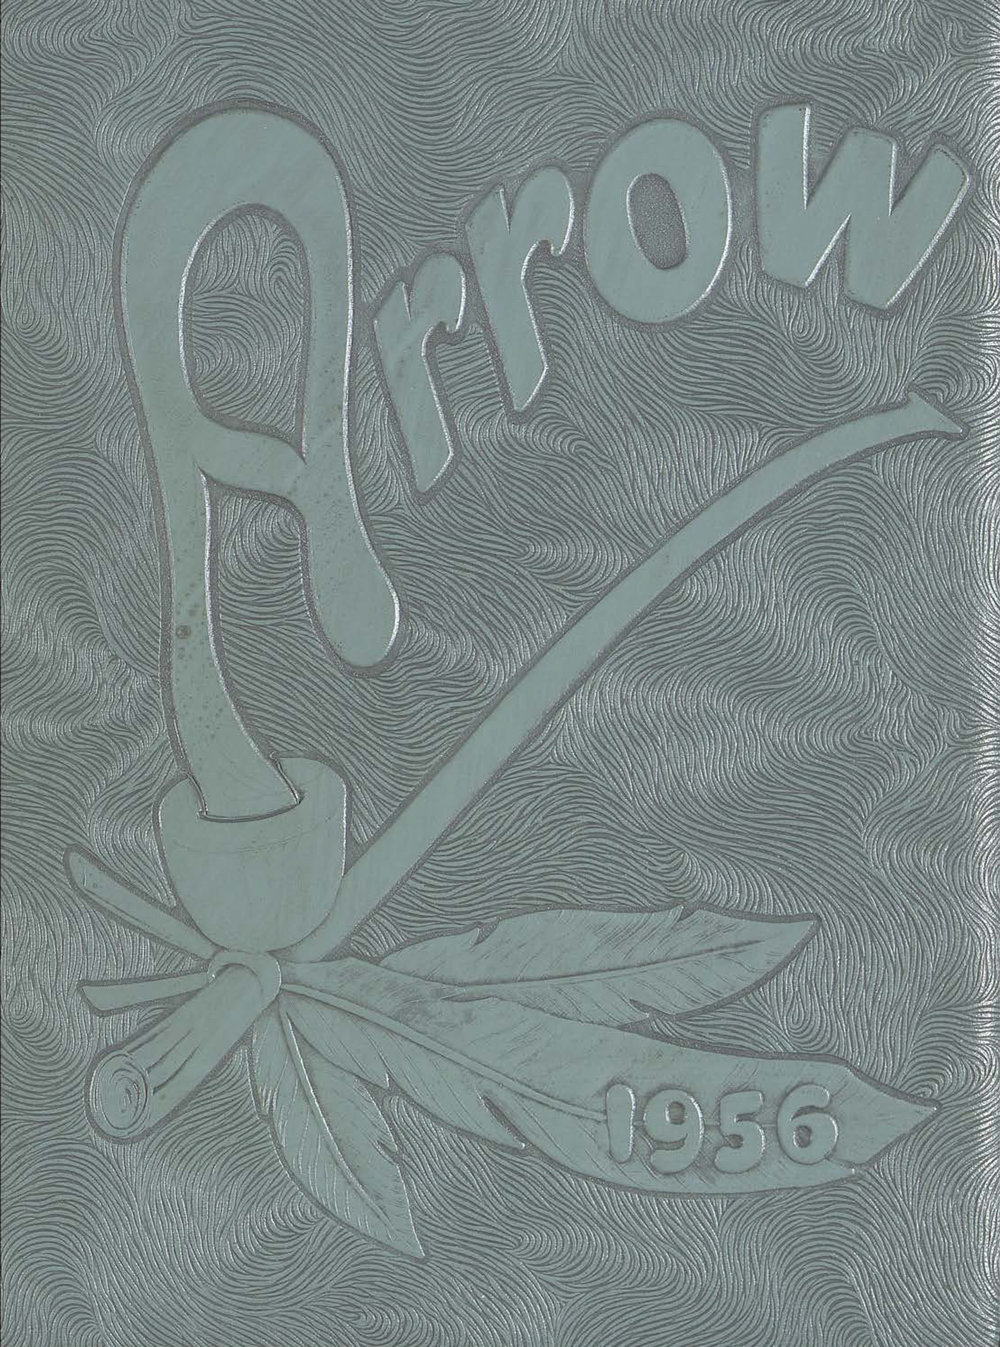 The Arrow 1956